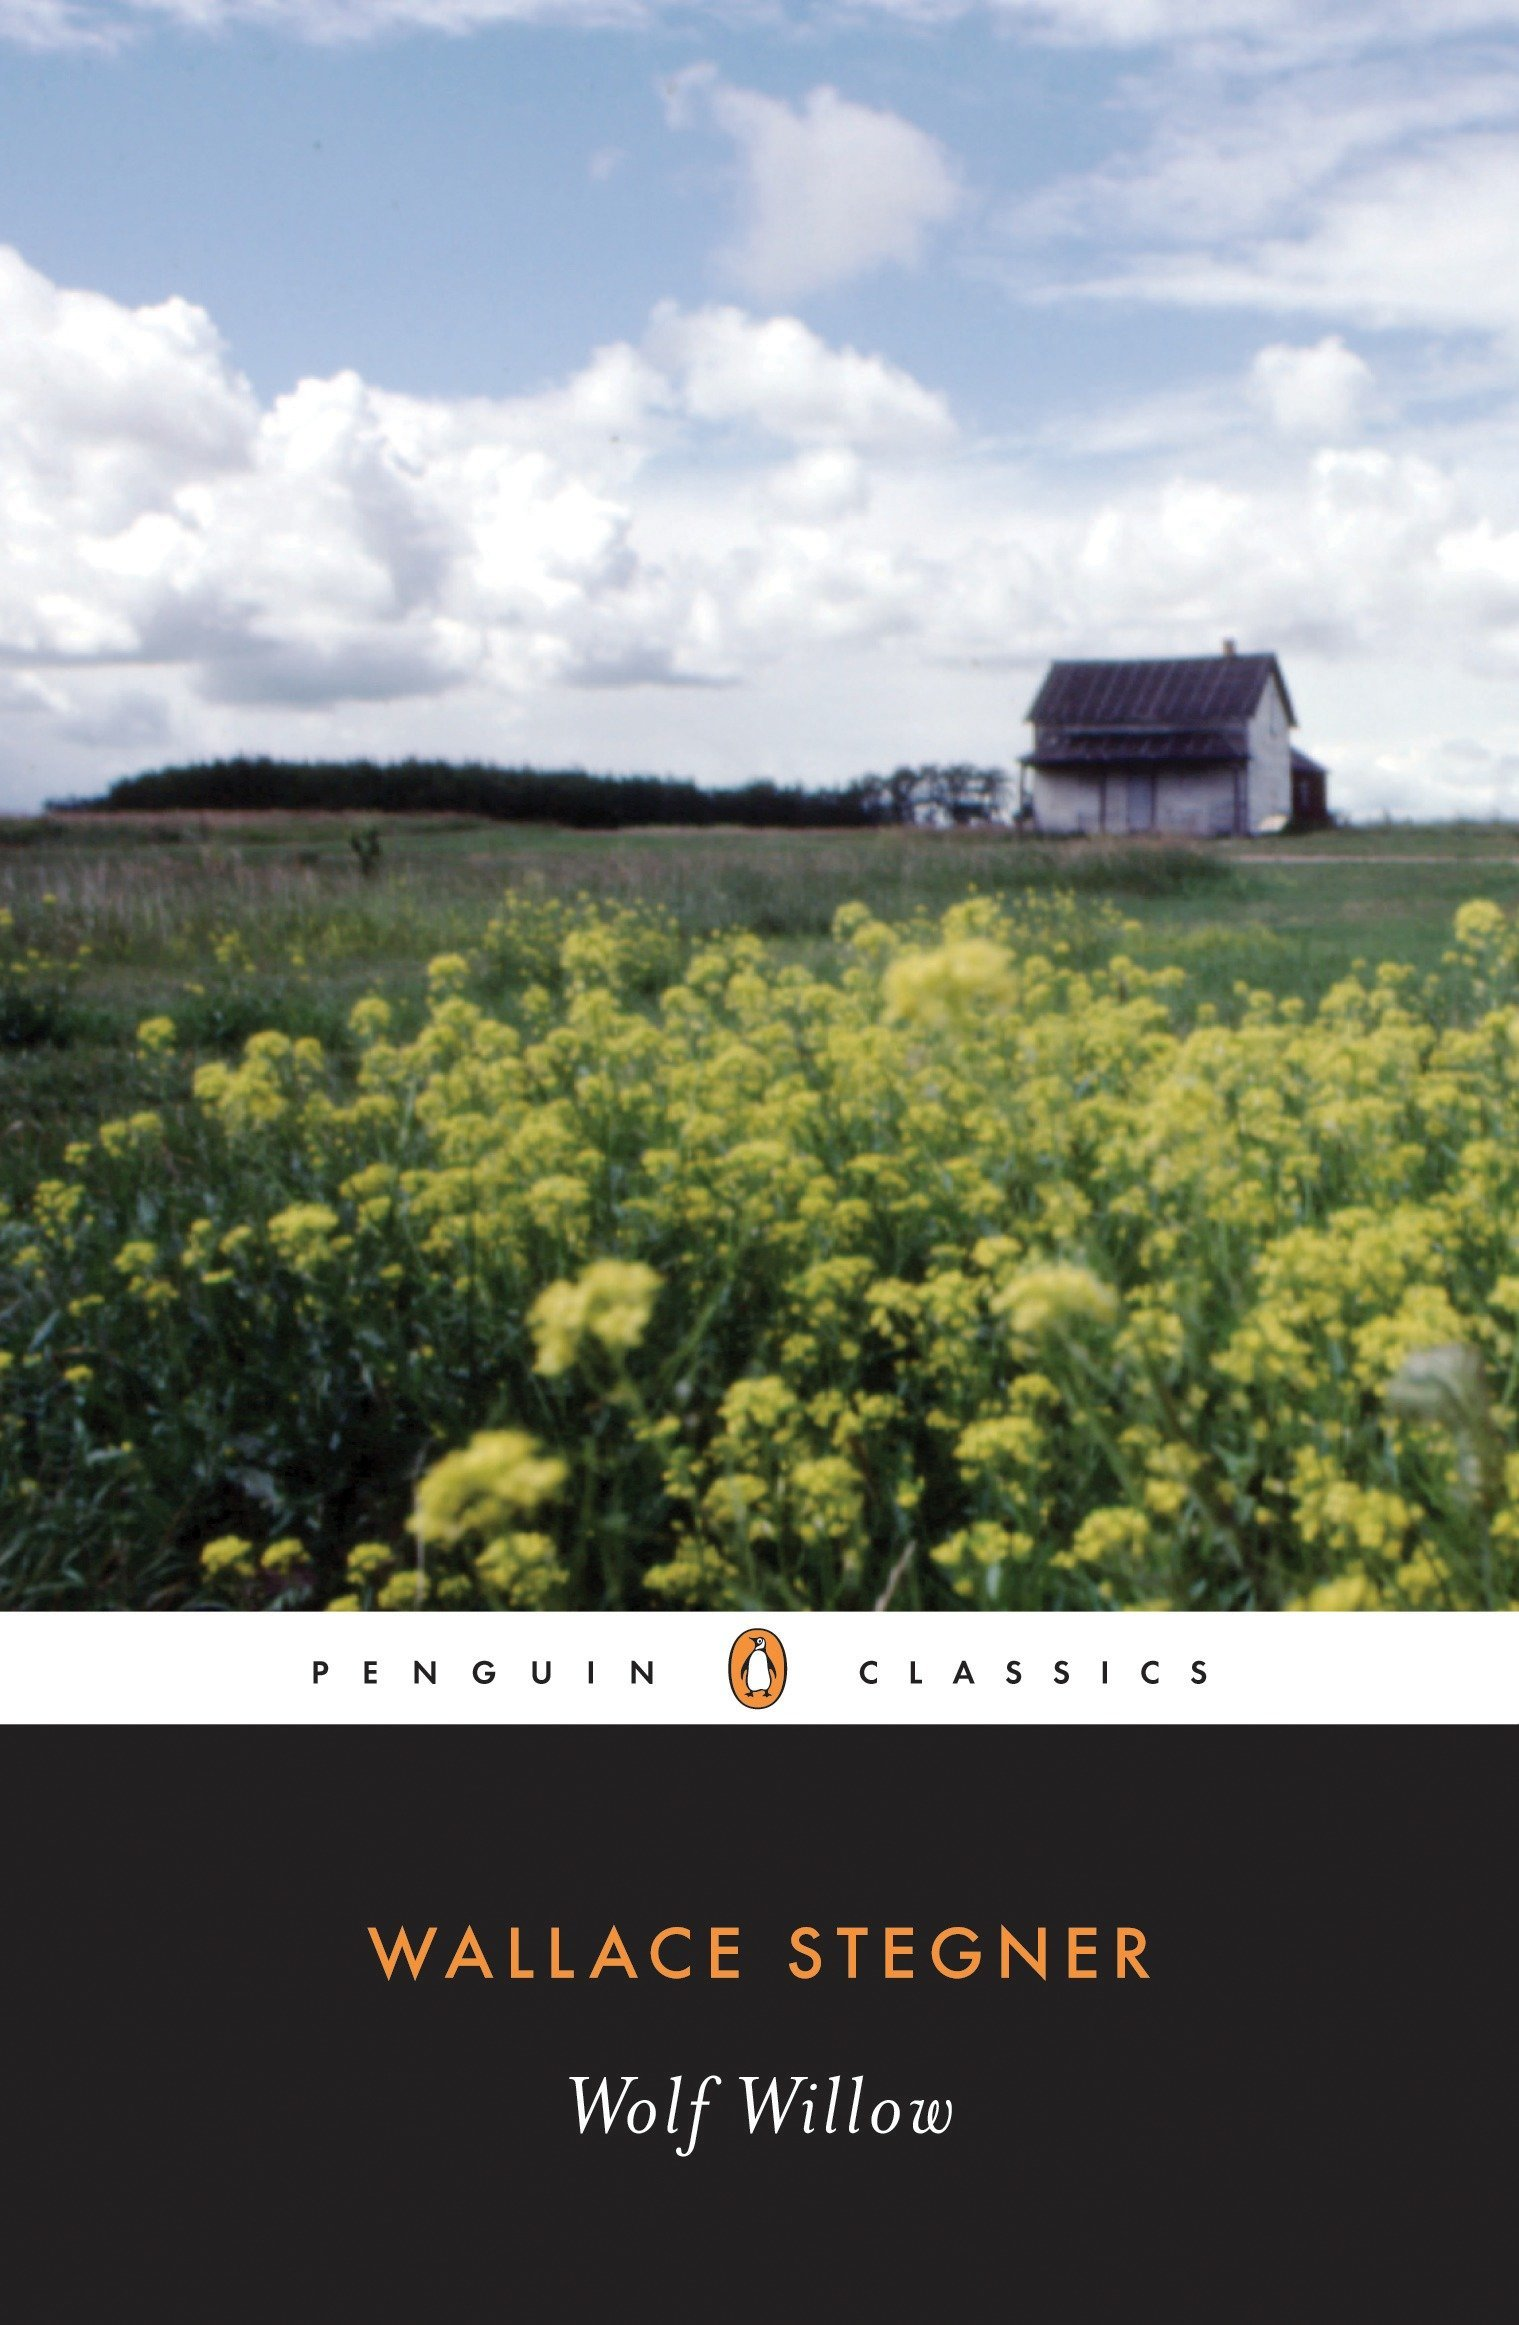 Wolf Willow_Wallace Stegner